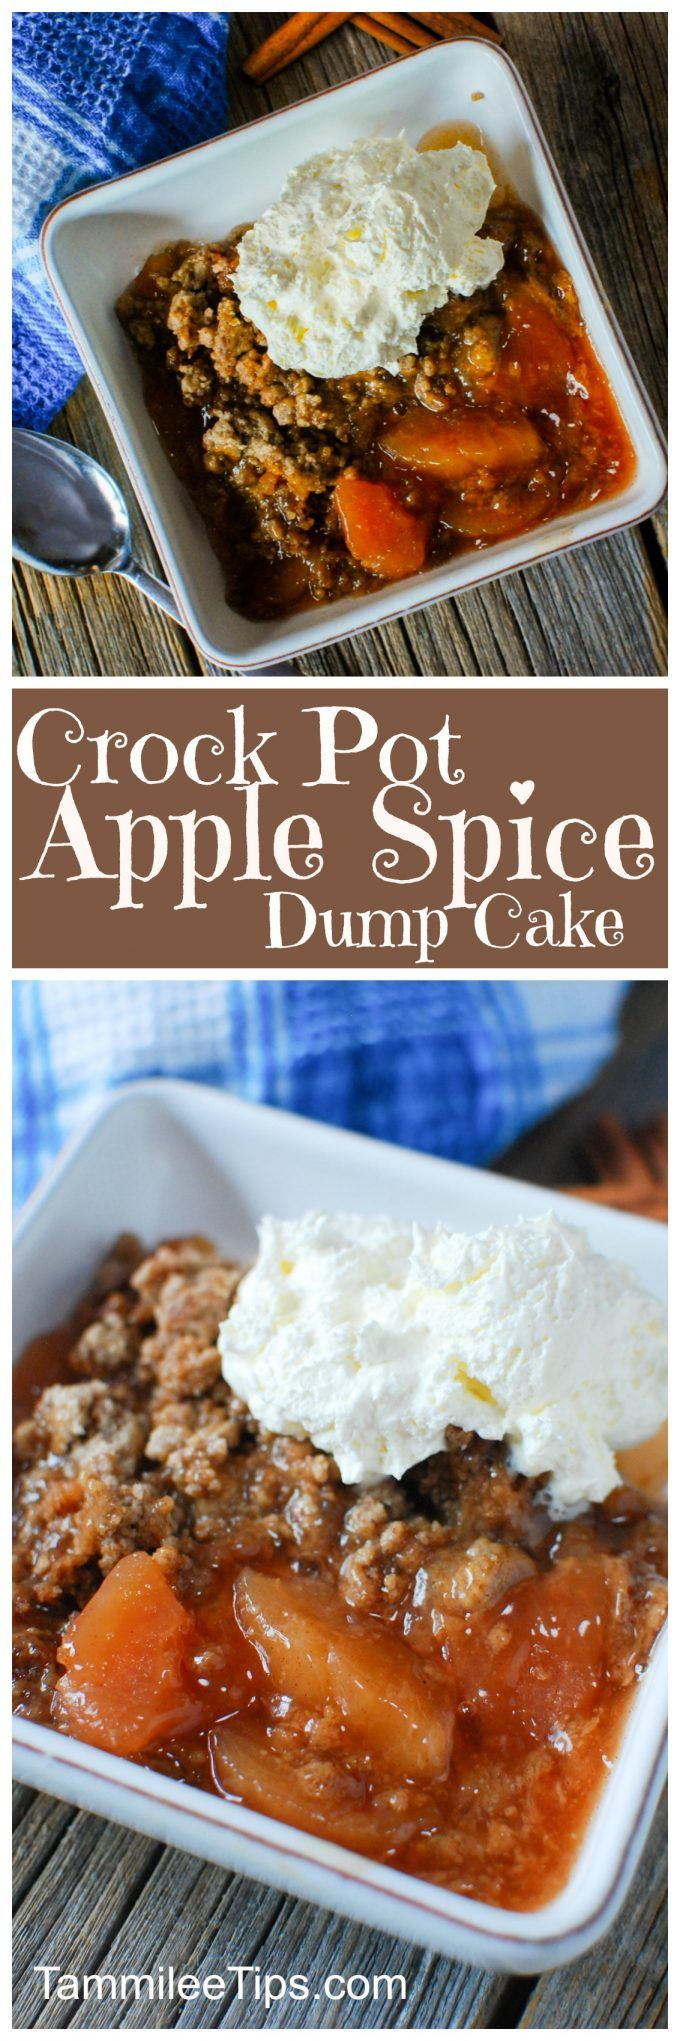 307 best recipes images on pinterest recipes crock pot for Easy apple dessert recipes with few ingredients